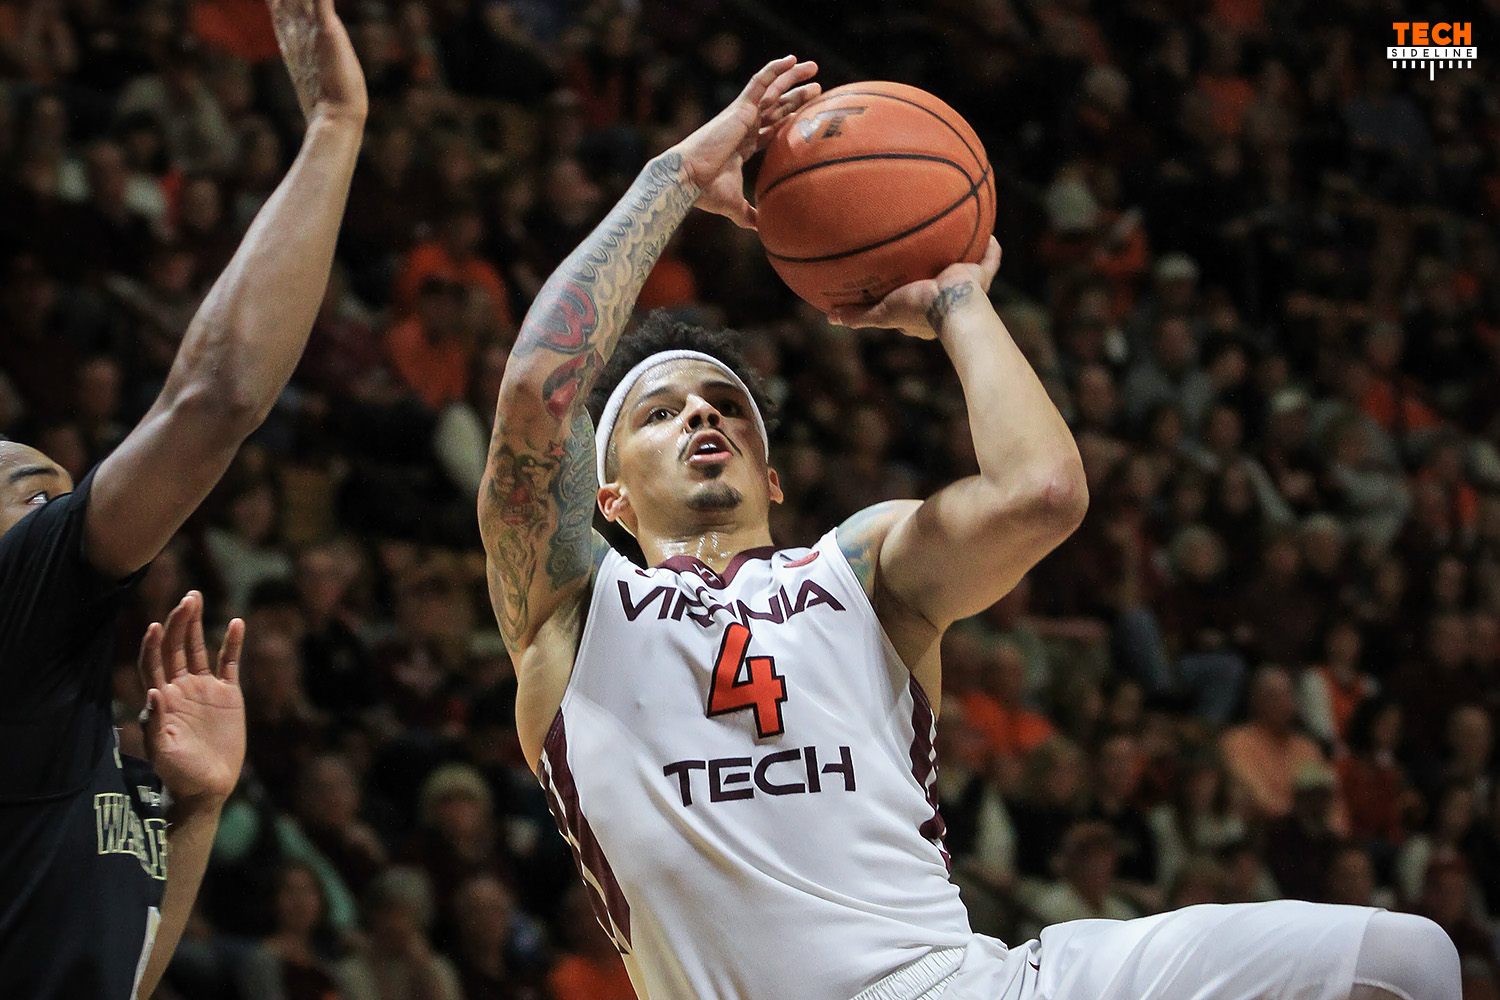 Seth Allen and the Hokies are hoping to make some noise in Brooklyn. (Ivan Morozov)